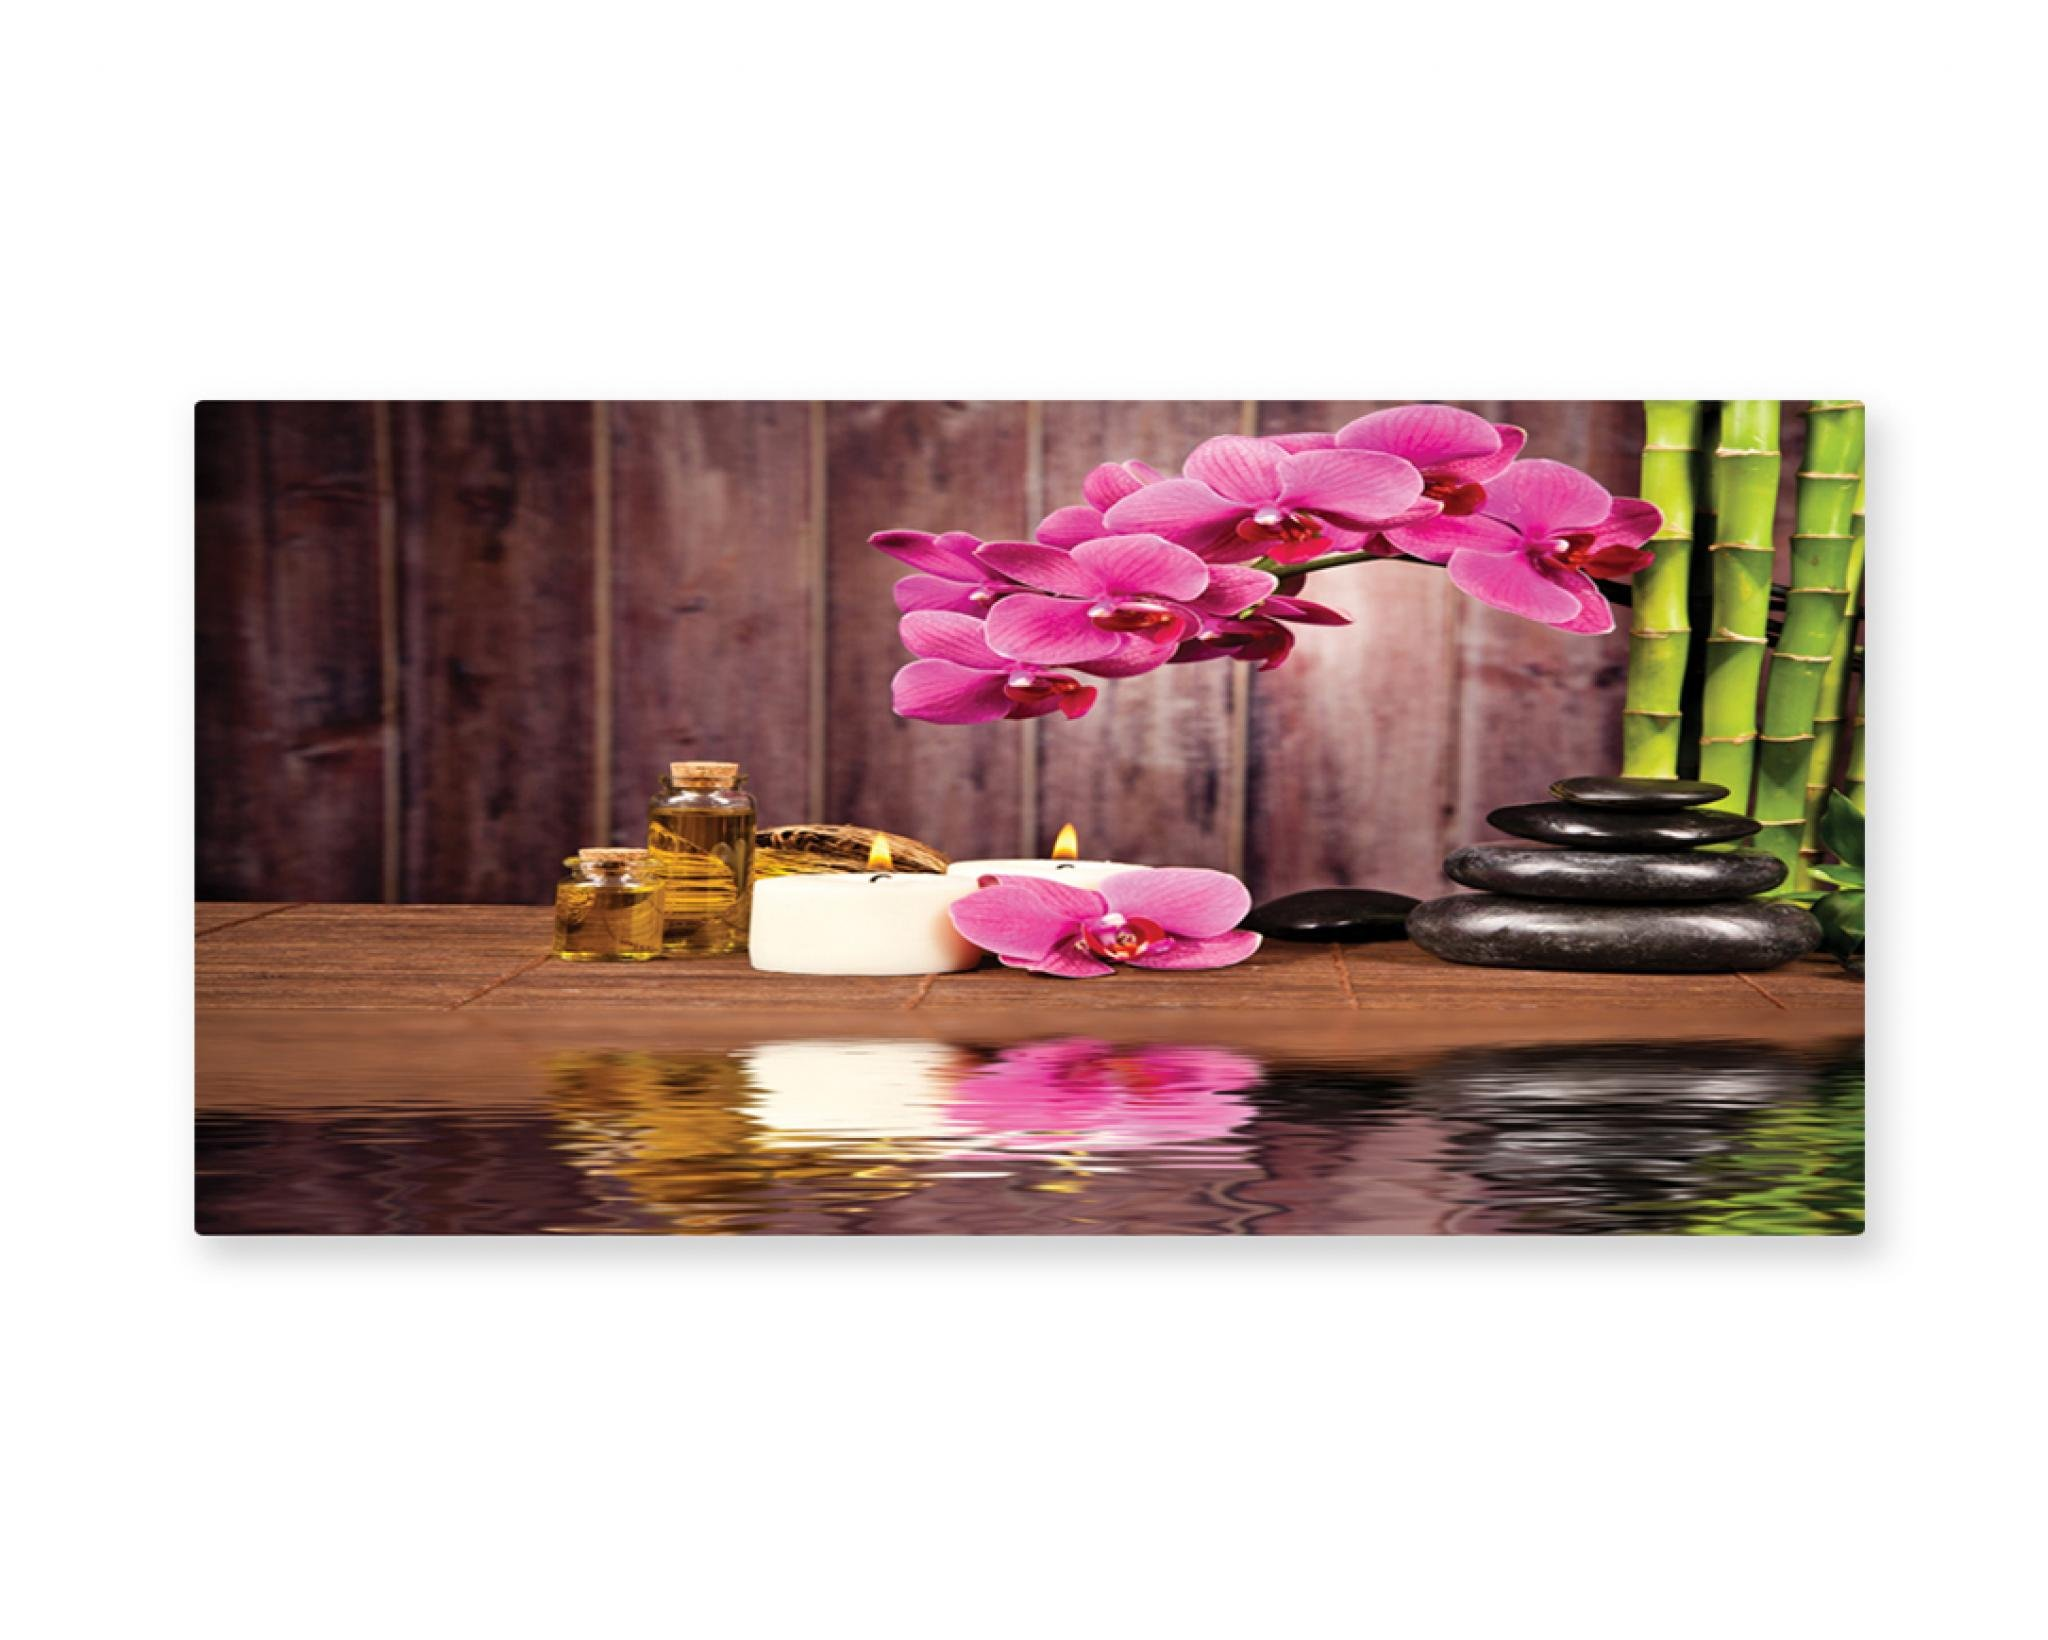 Ambesonne Spa Wall Art, Spa Flower and Water Reflection Aromatherapy Bamboo Blossom Candlelight Print, Gloss Aluminium Modern Metal Artwork for Wall Decor, 23.5 W X 11.6 L Inches, Pink Green Umber